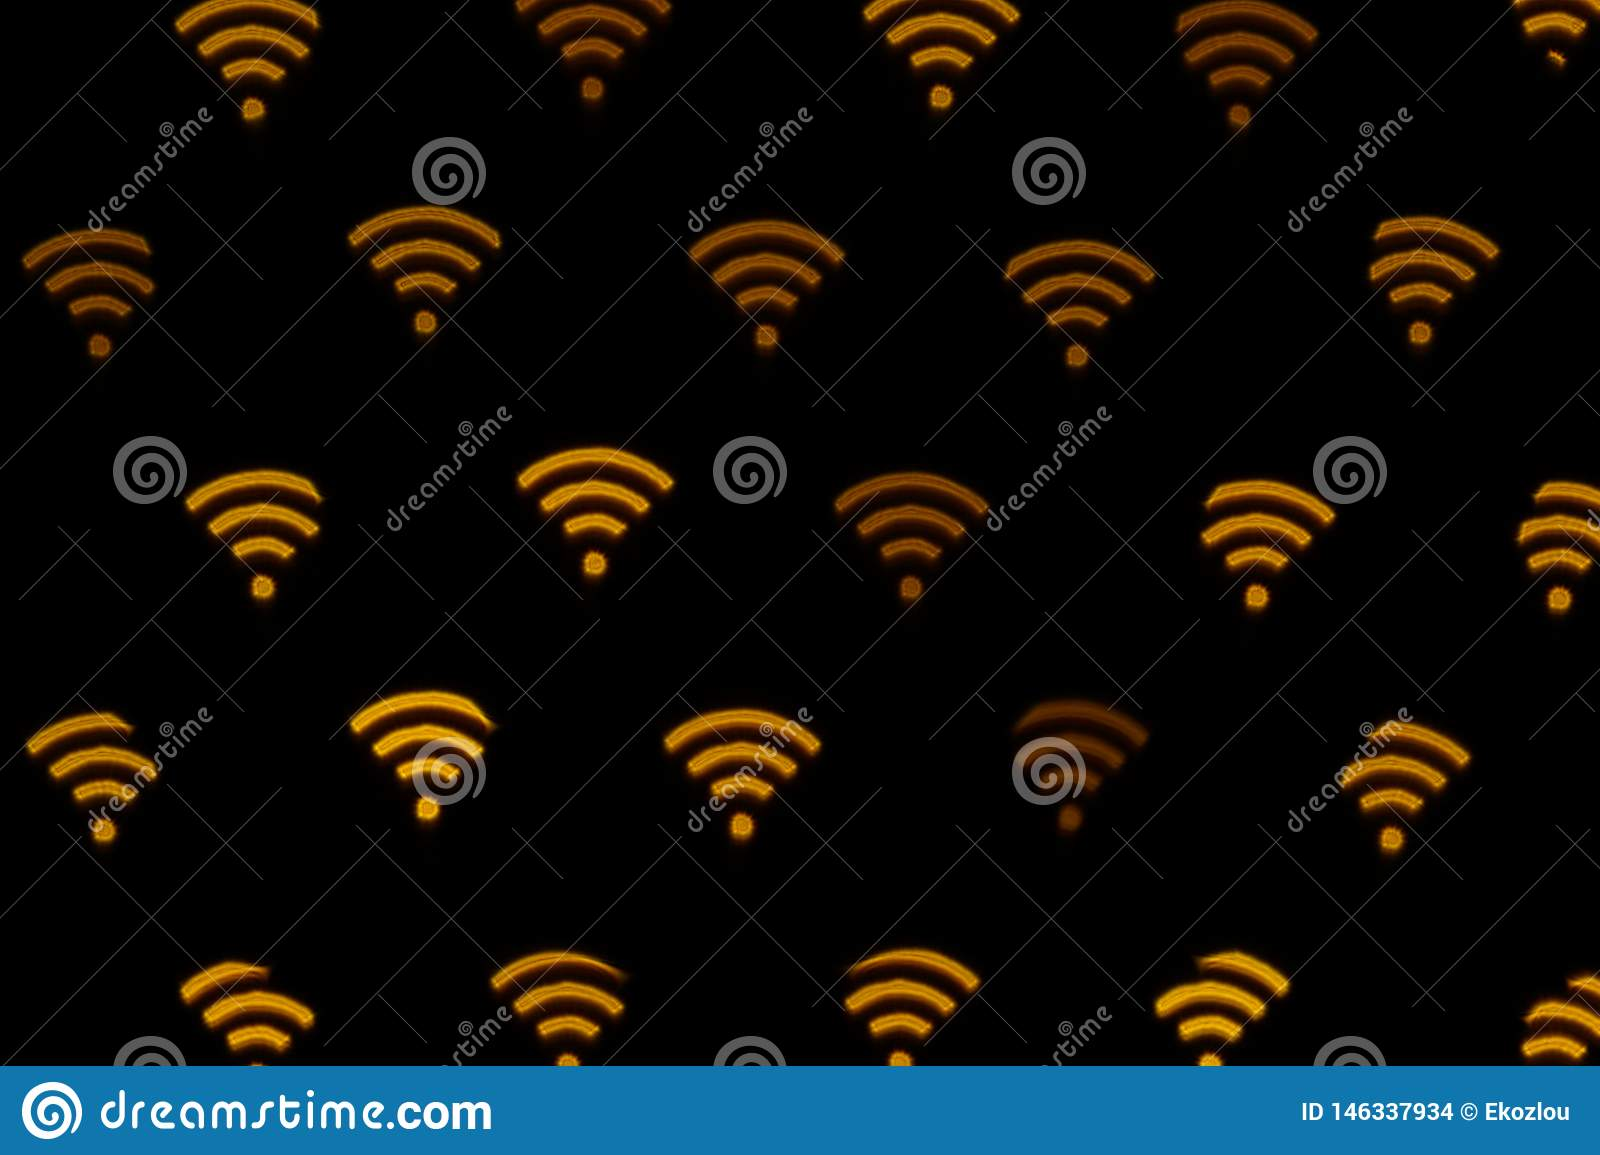 WIFI symbol abstract background. Icon connection to the wifi, wireless network icon